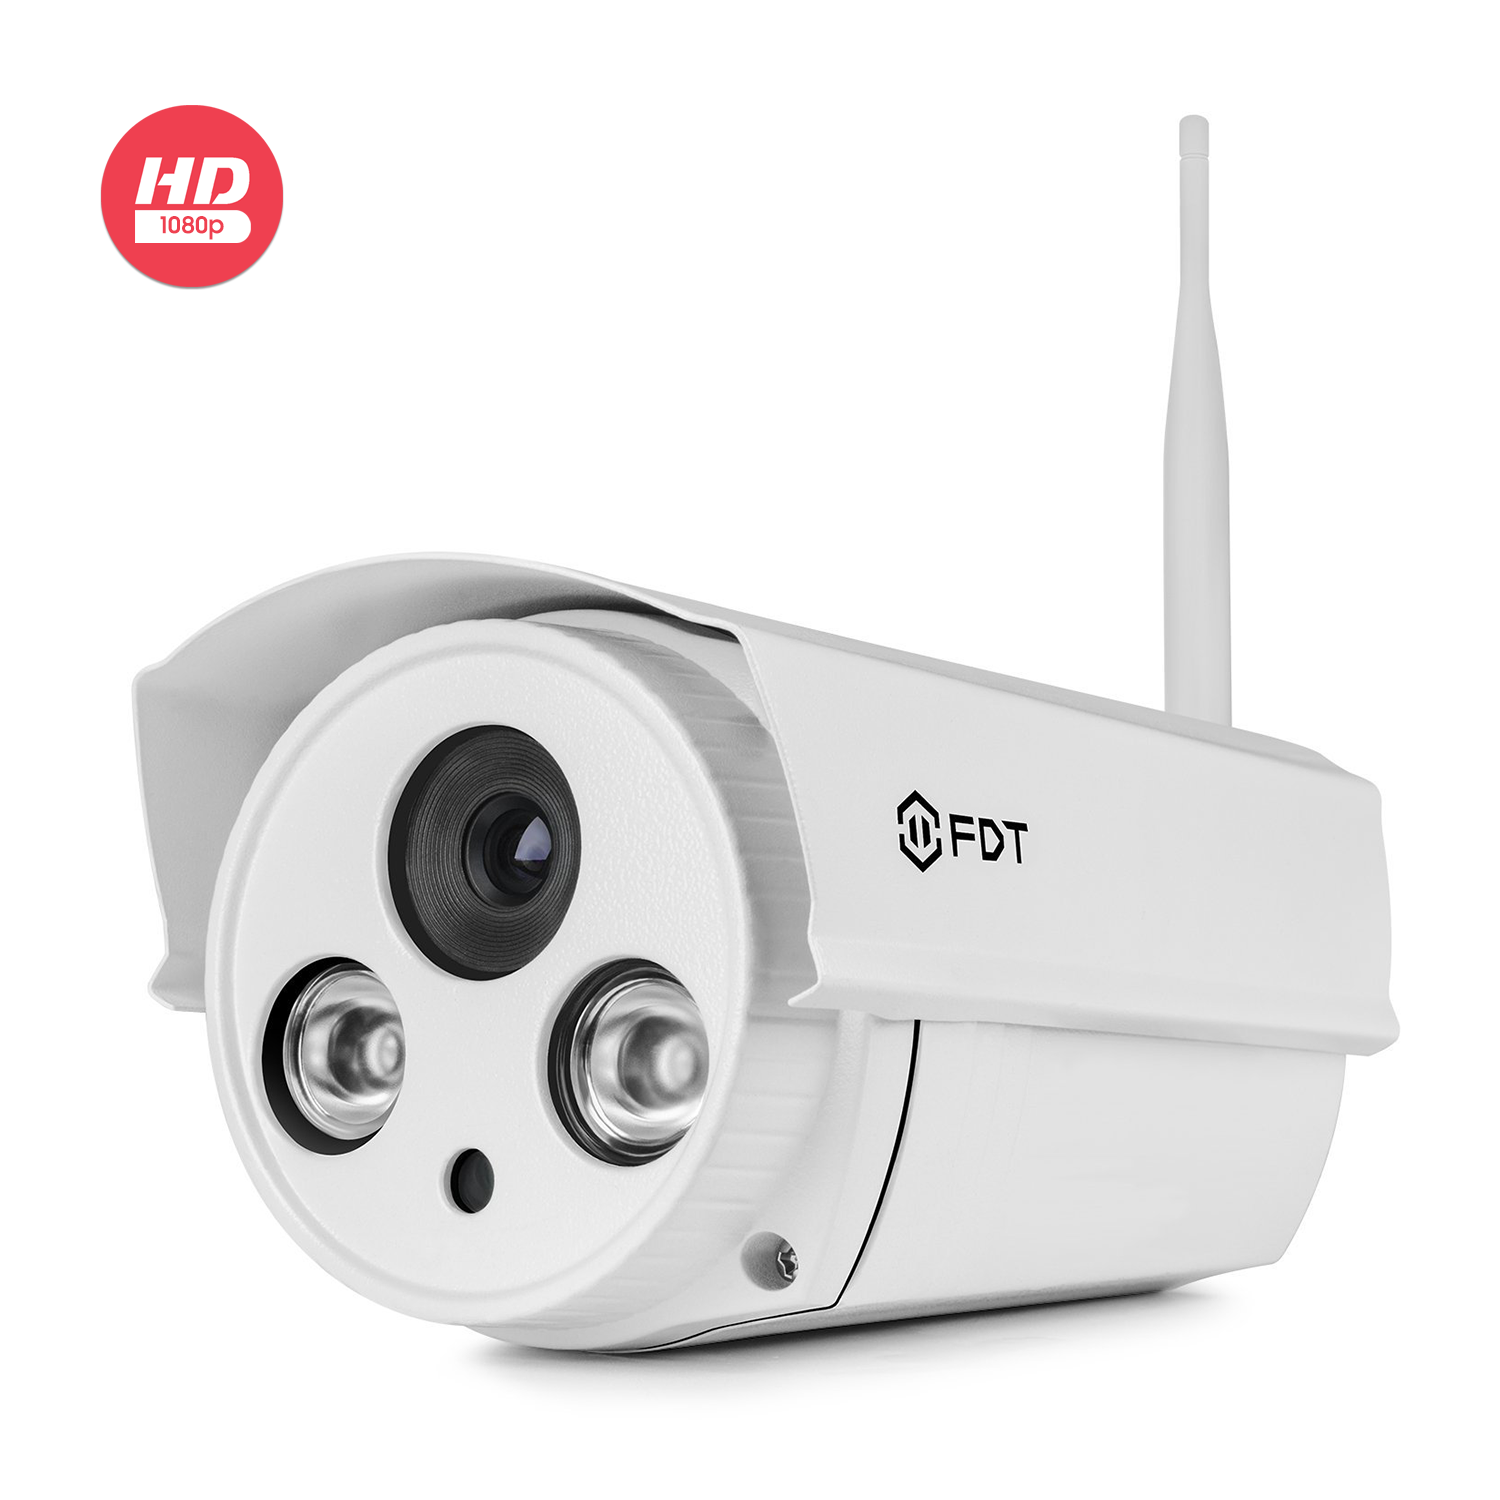 FDT 1080P HD WiFi Bullet IP Camera (2.0 Megapixel) Outdoor Wireless Security Camera FD8902 (White), Plug & Play & Nightvision w/ 16GB SD Card